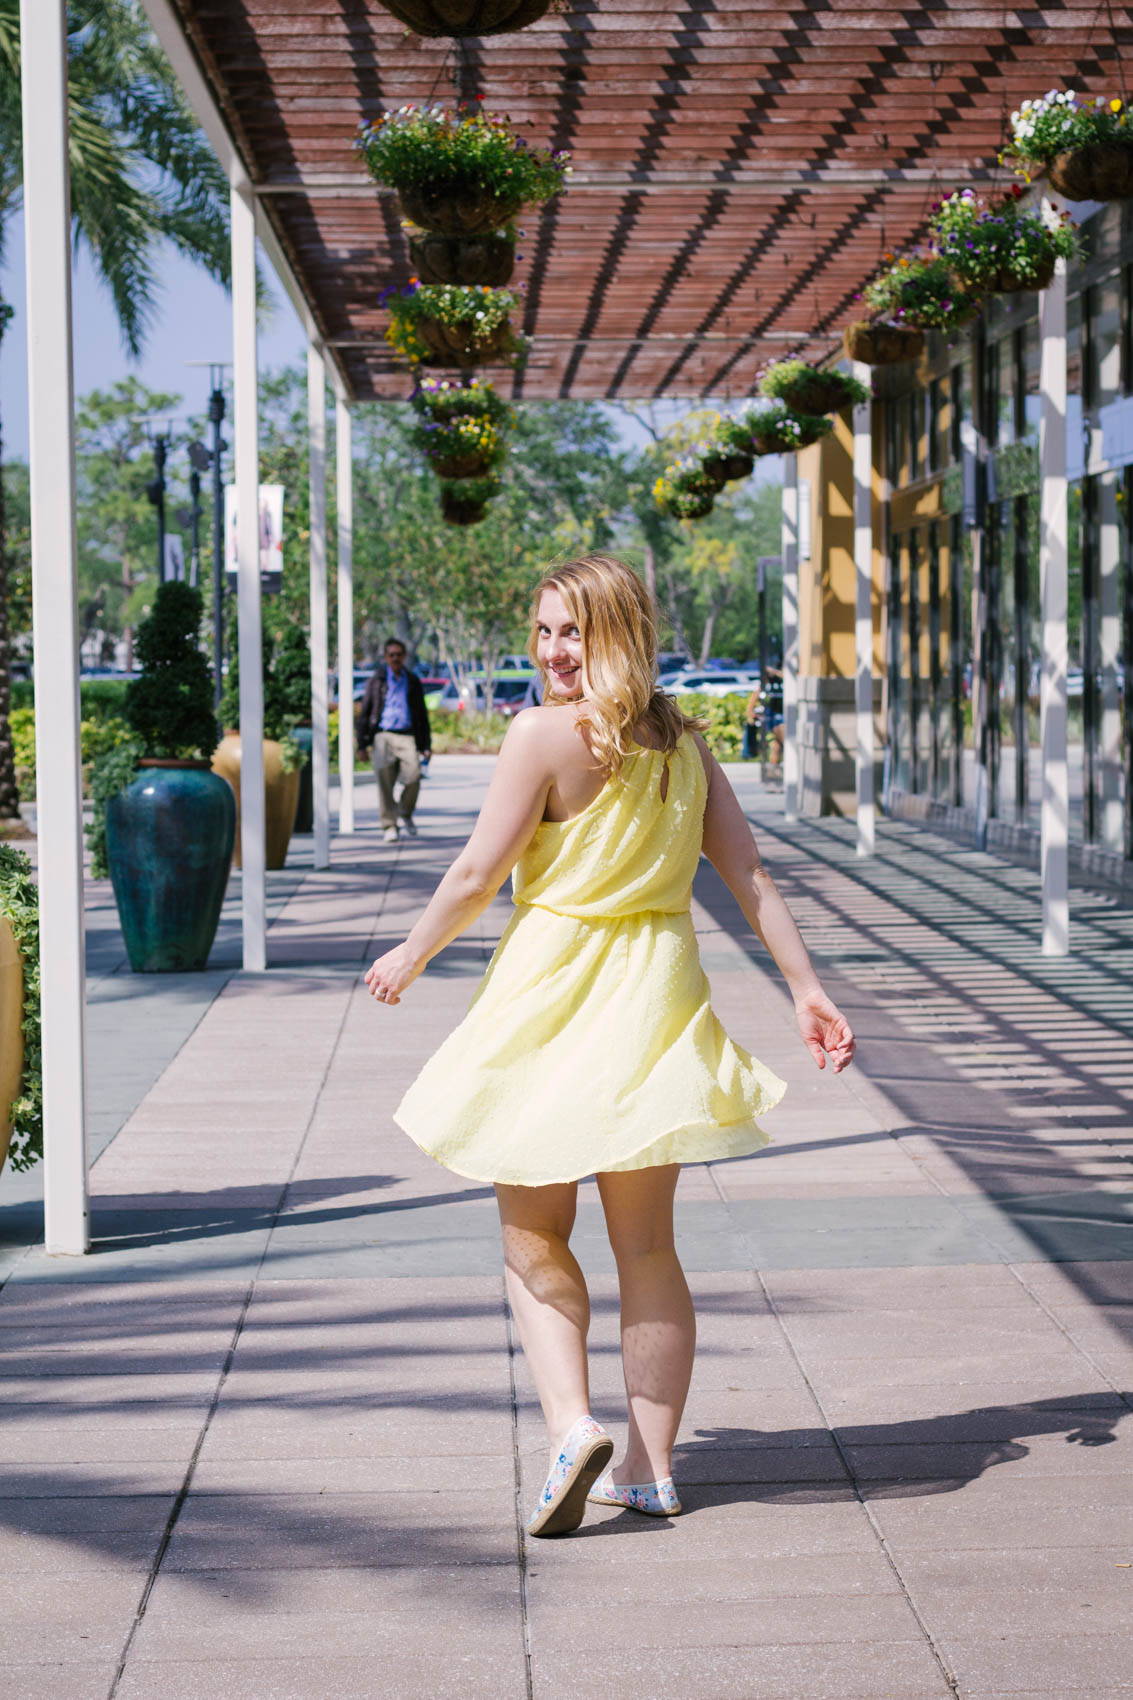 Now that we're finally coming out of what seemed like an eternity of winter, it's time to soak up the sun in cute dresses! My go-to is currently a gorgeous yellow swiss dot dress, but the most important thing when shopping for spring is that you find styles that make you happy!